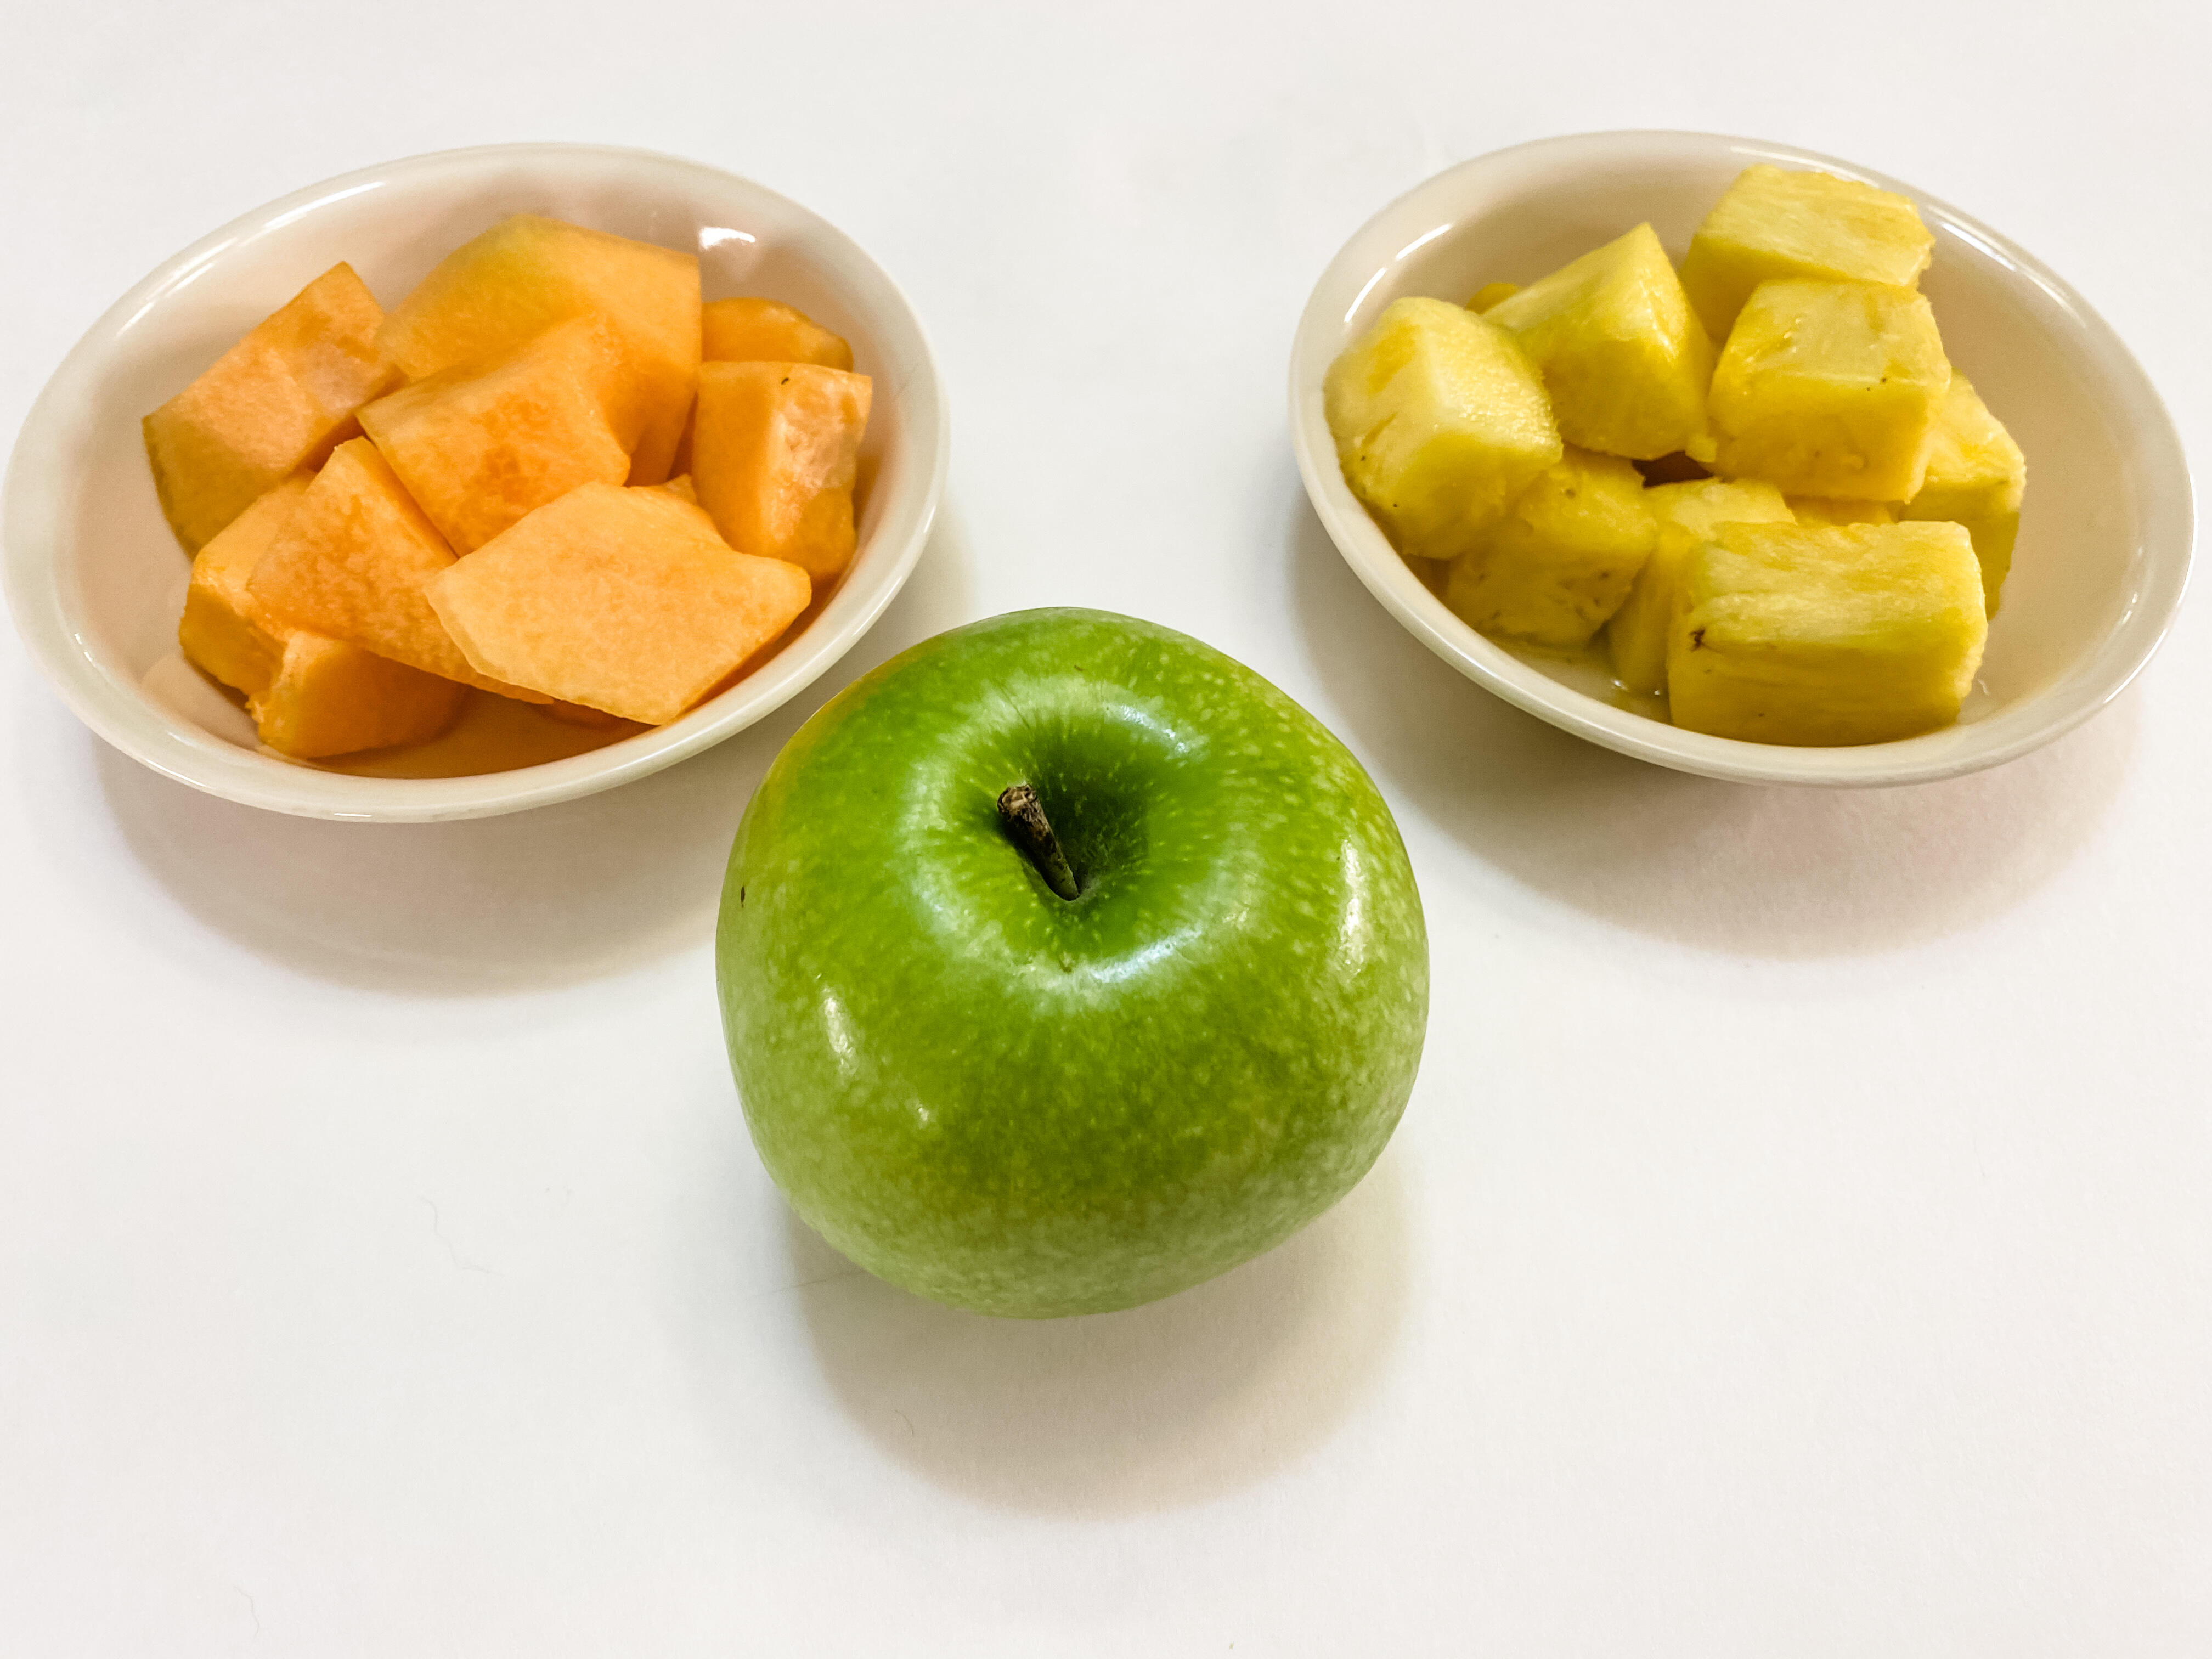 5 servings of fruit: a cup of melon, a cup of pineapple, an apple